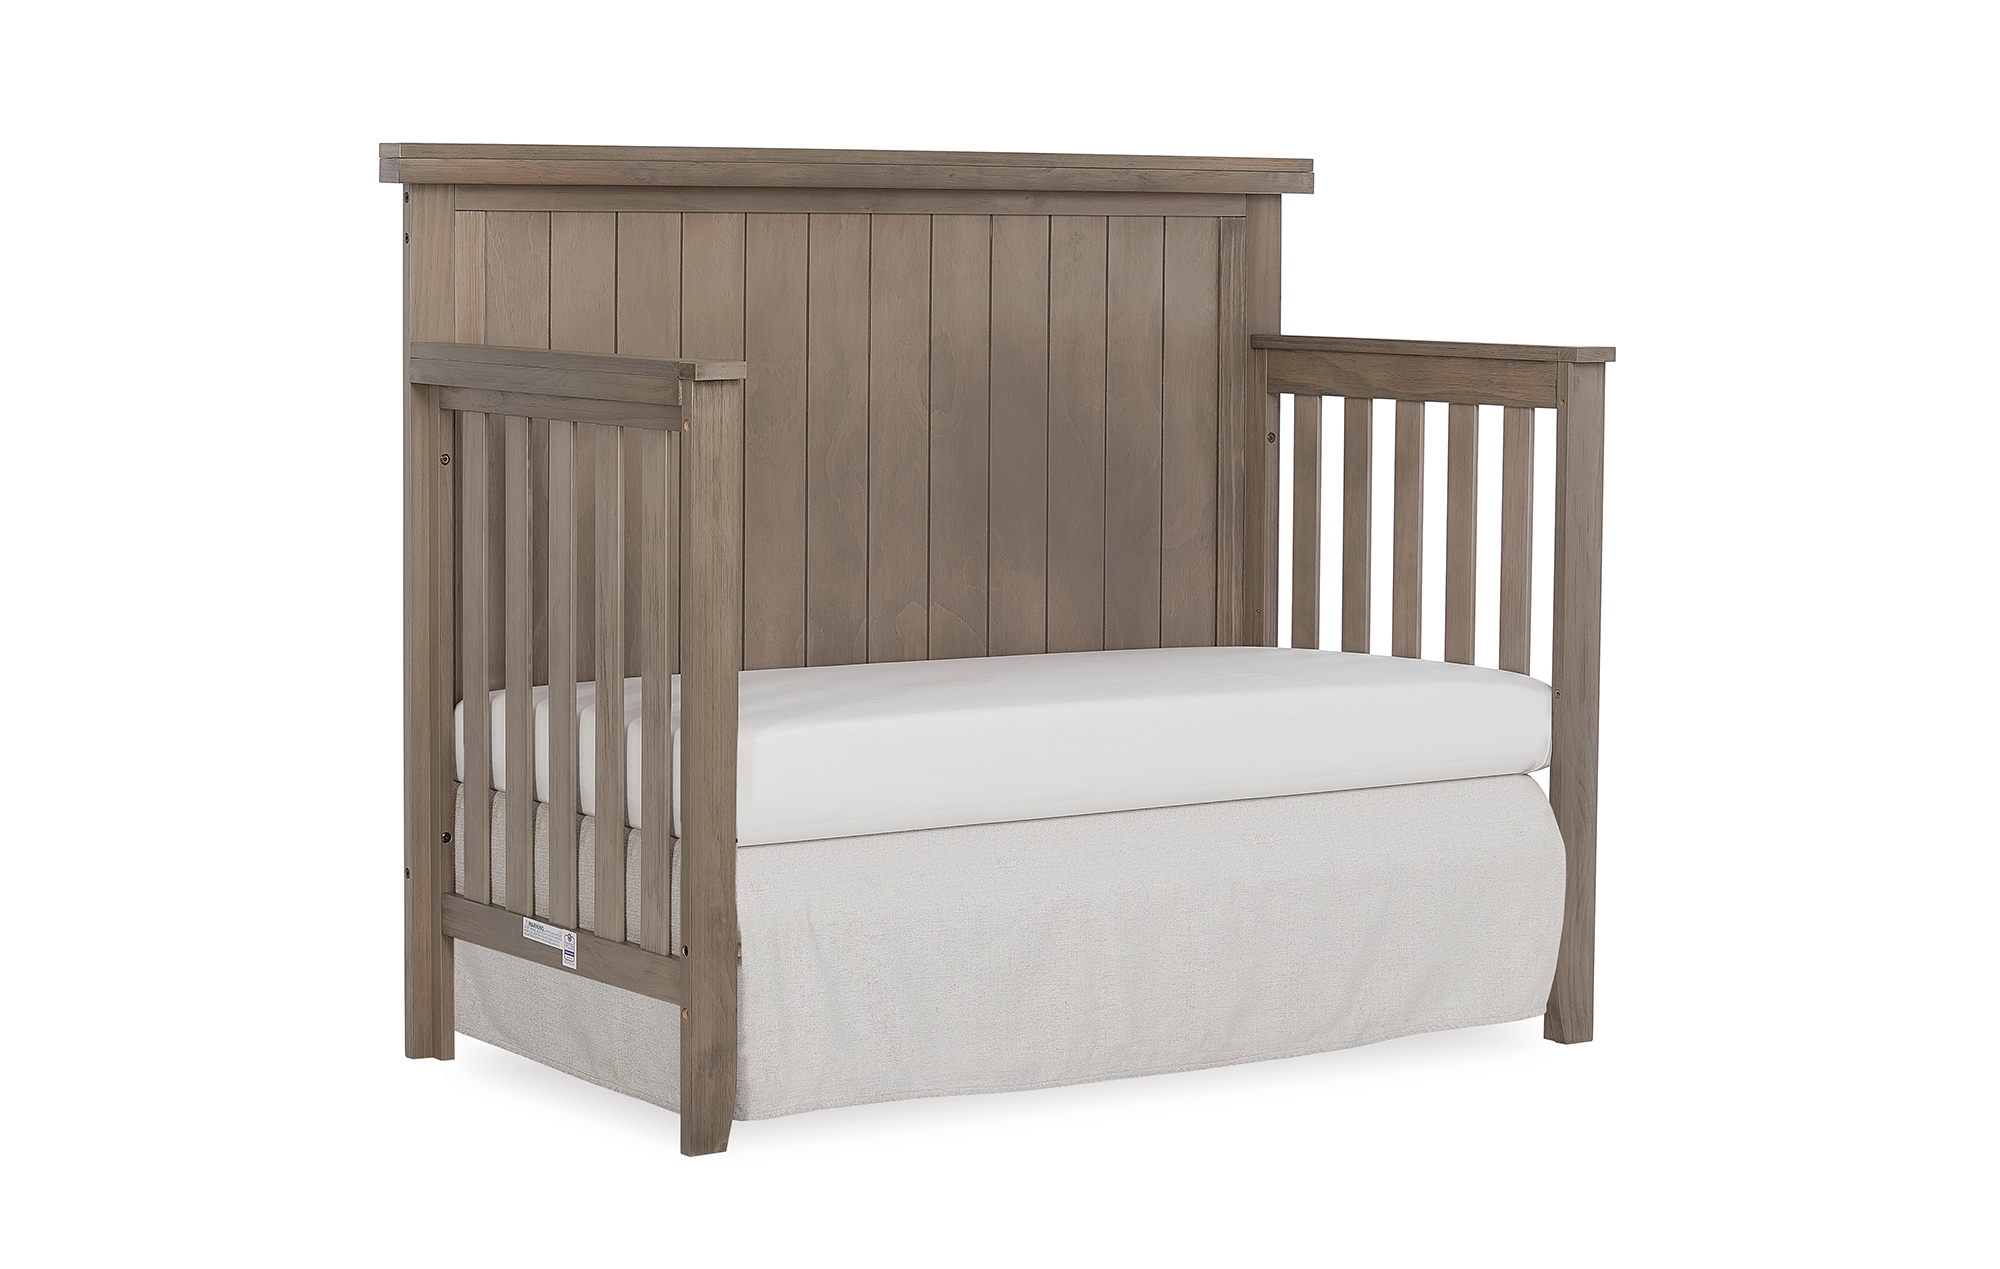 772BR-OAKGY Maple Day Bed